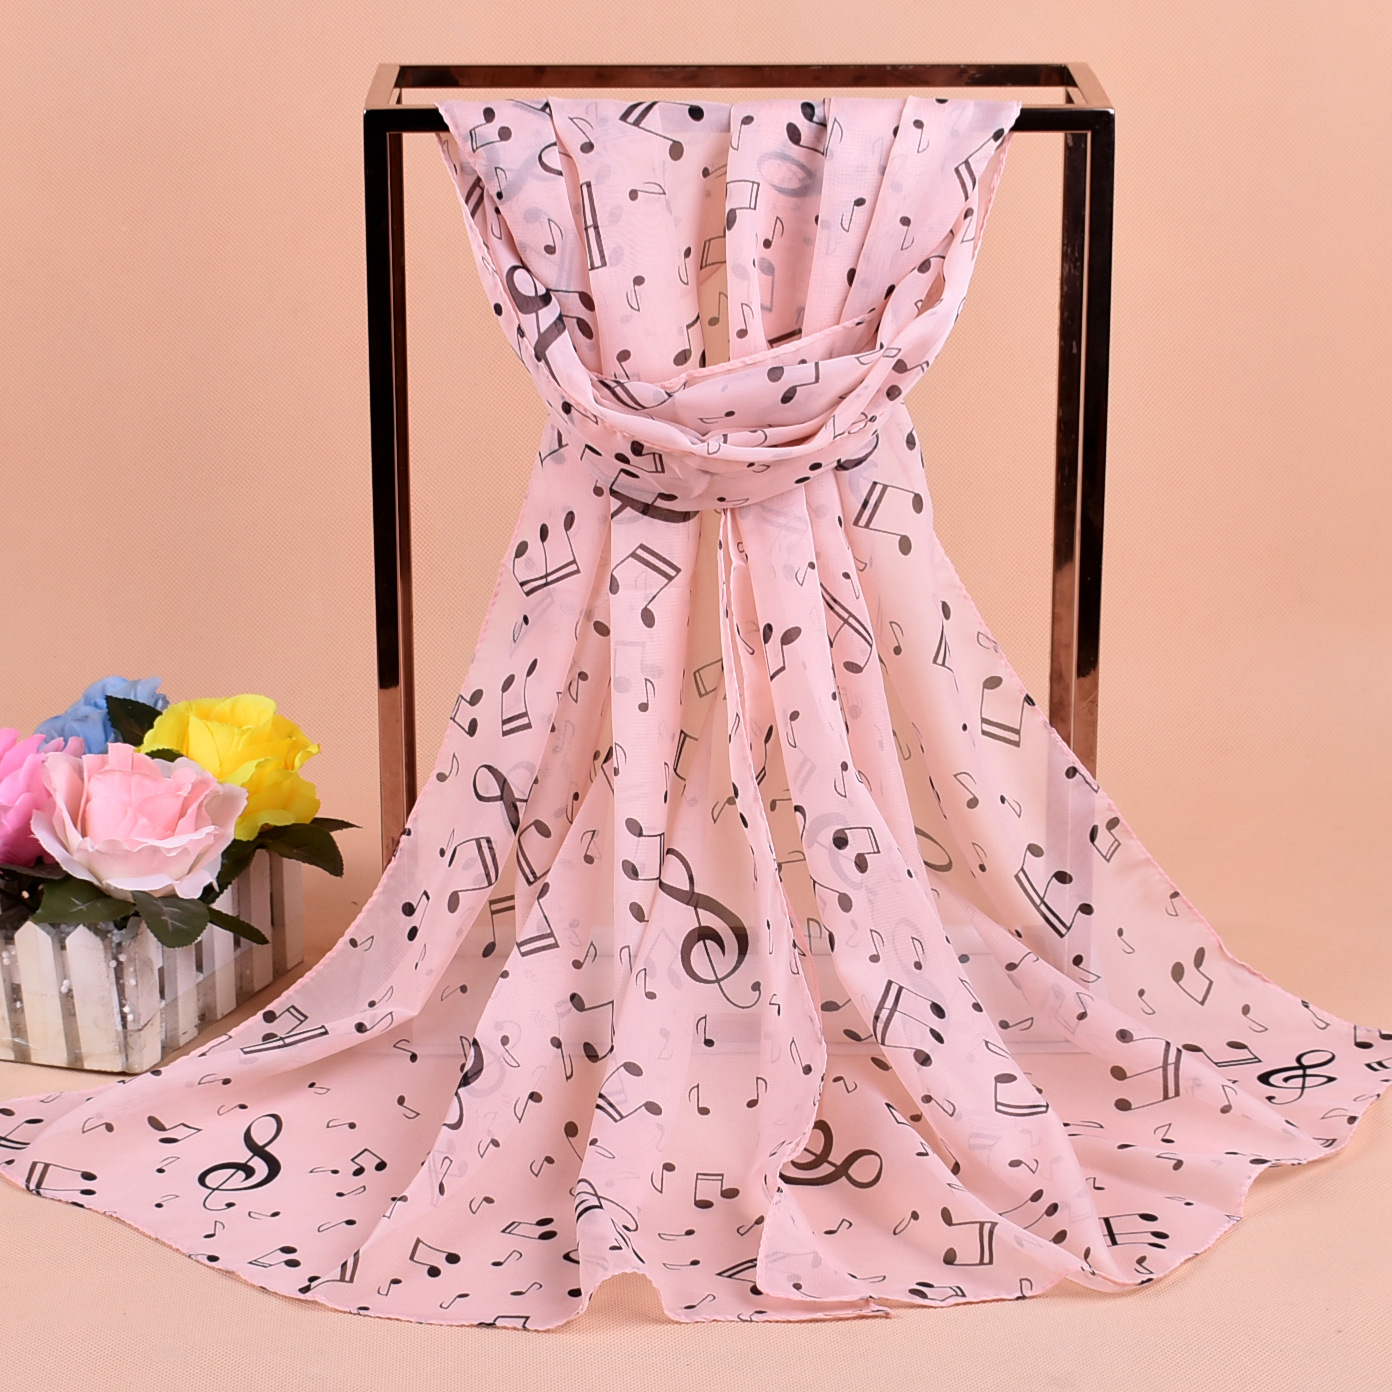 1PC 2019 new   scarf   women Lady beauty Musical Note Chiffon Neck   Scarf   Shawl Muffler shawls and   scarves   foulard femme 50*160cm